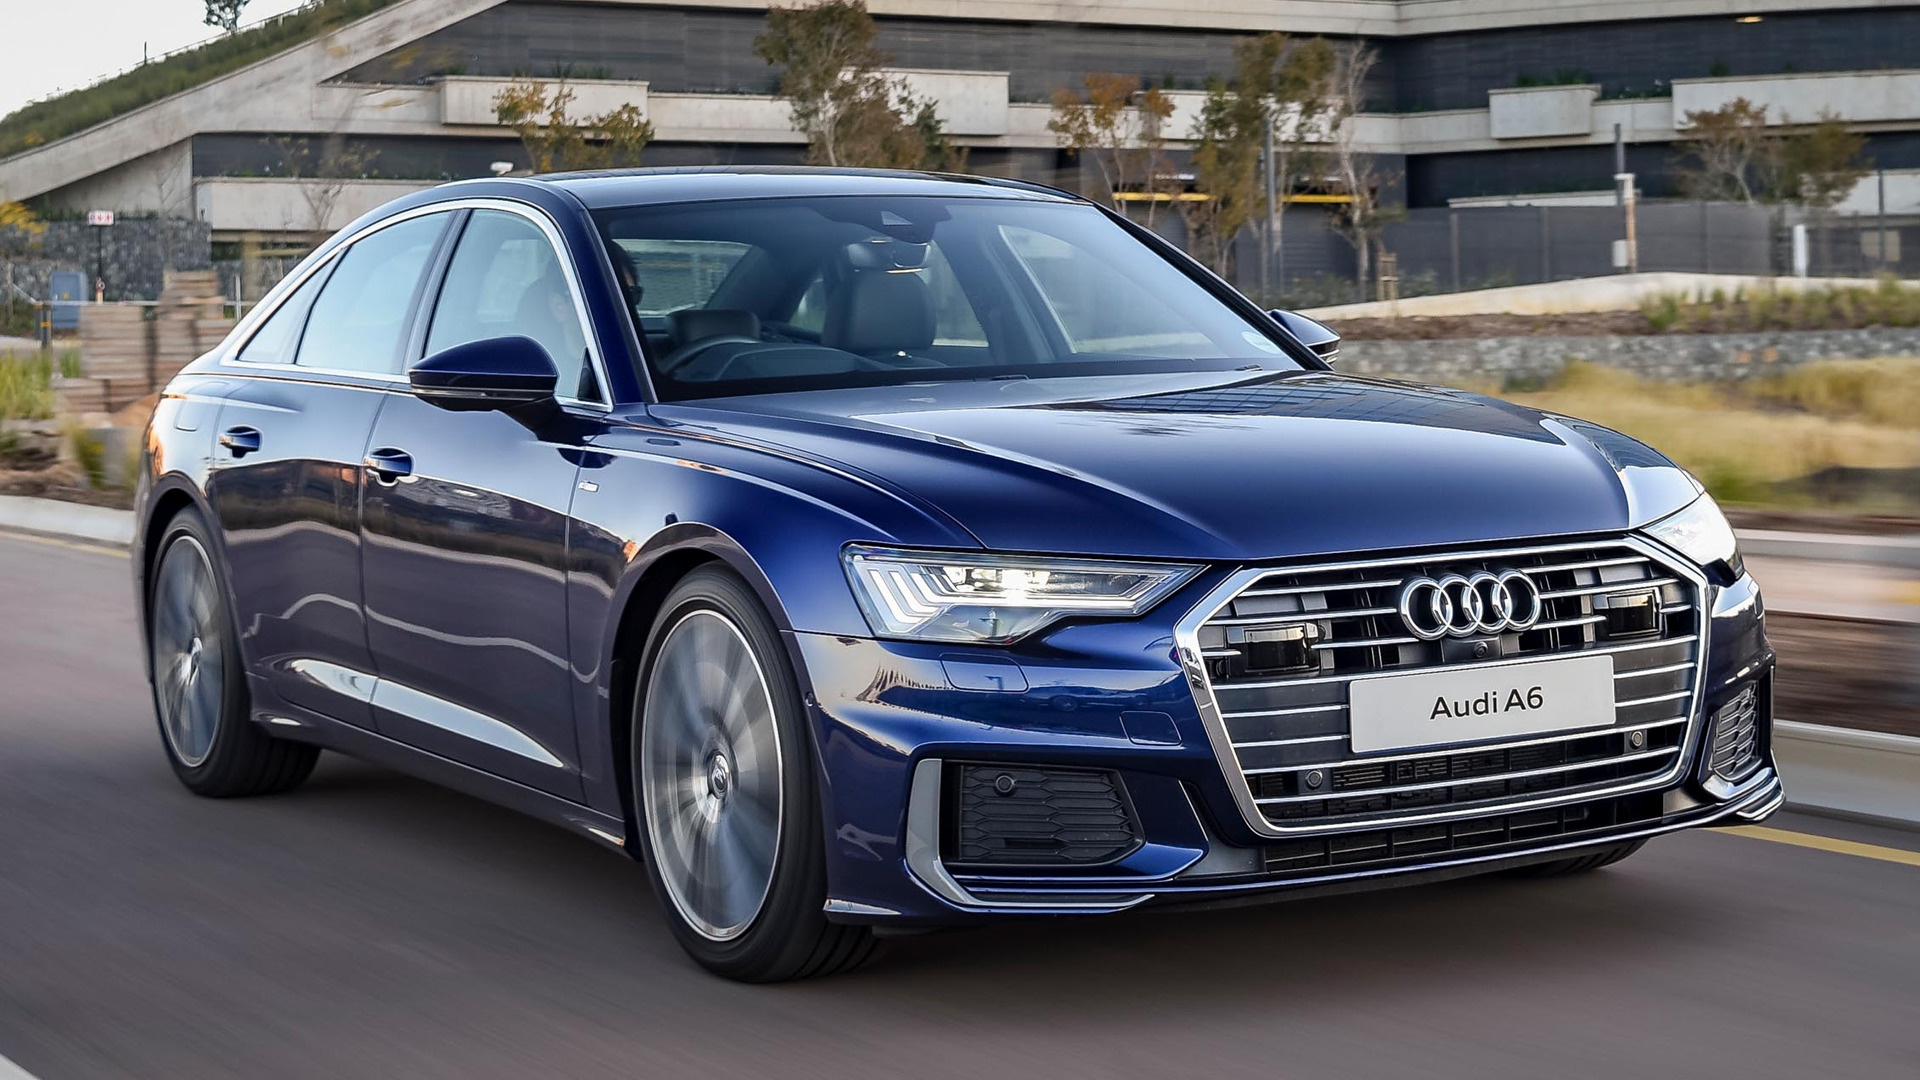 2020 Audi A6 Sedan S line (ZA) - Wallpapers and HD Images ...